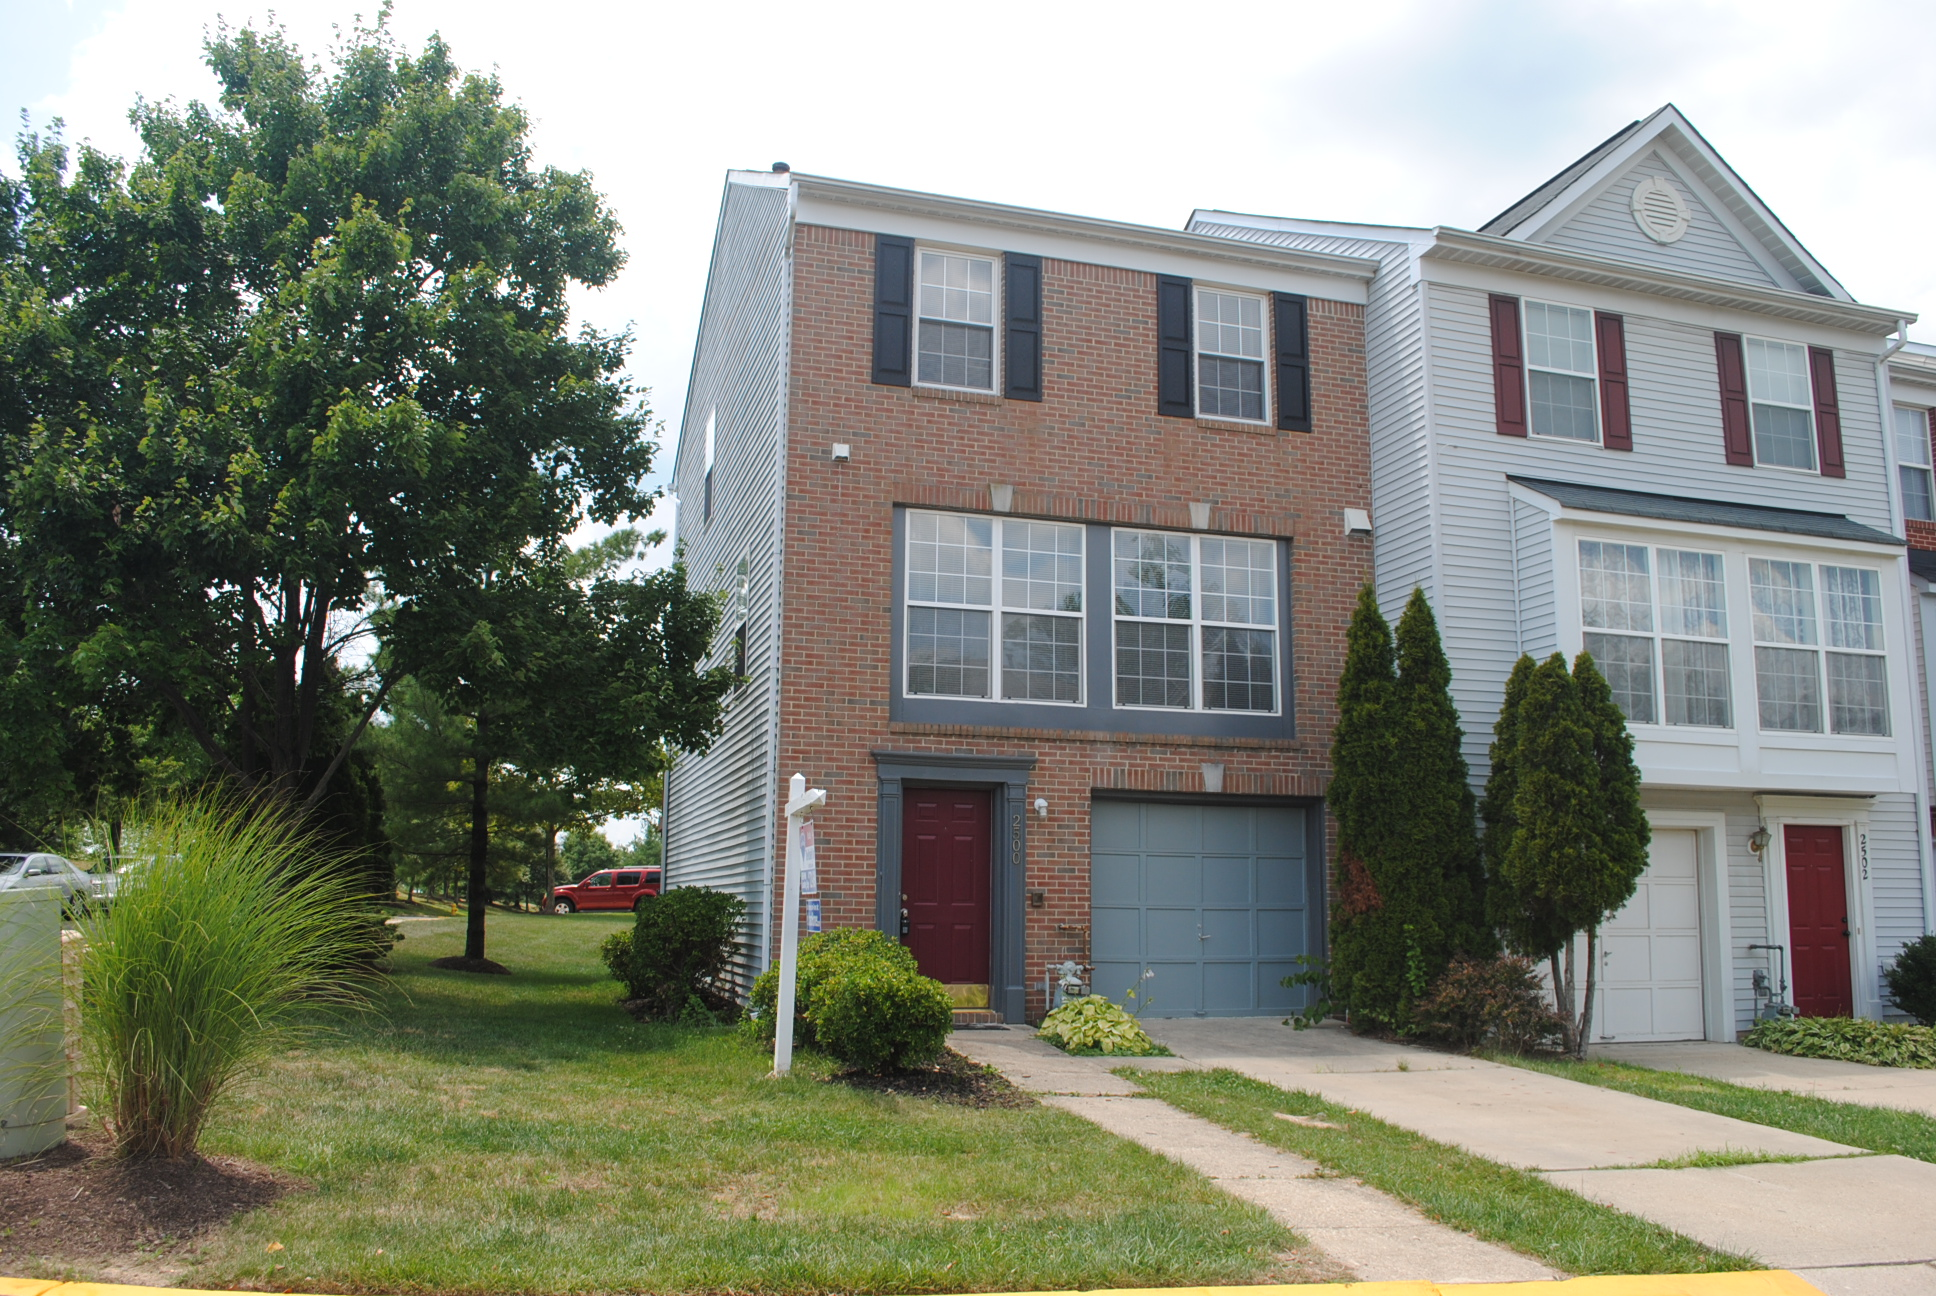 homes for sale odenton md